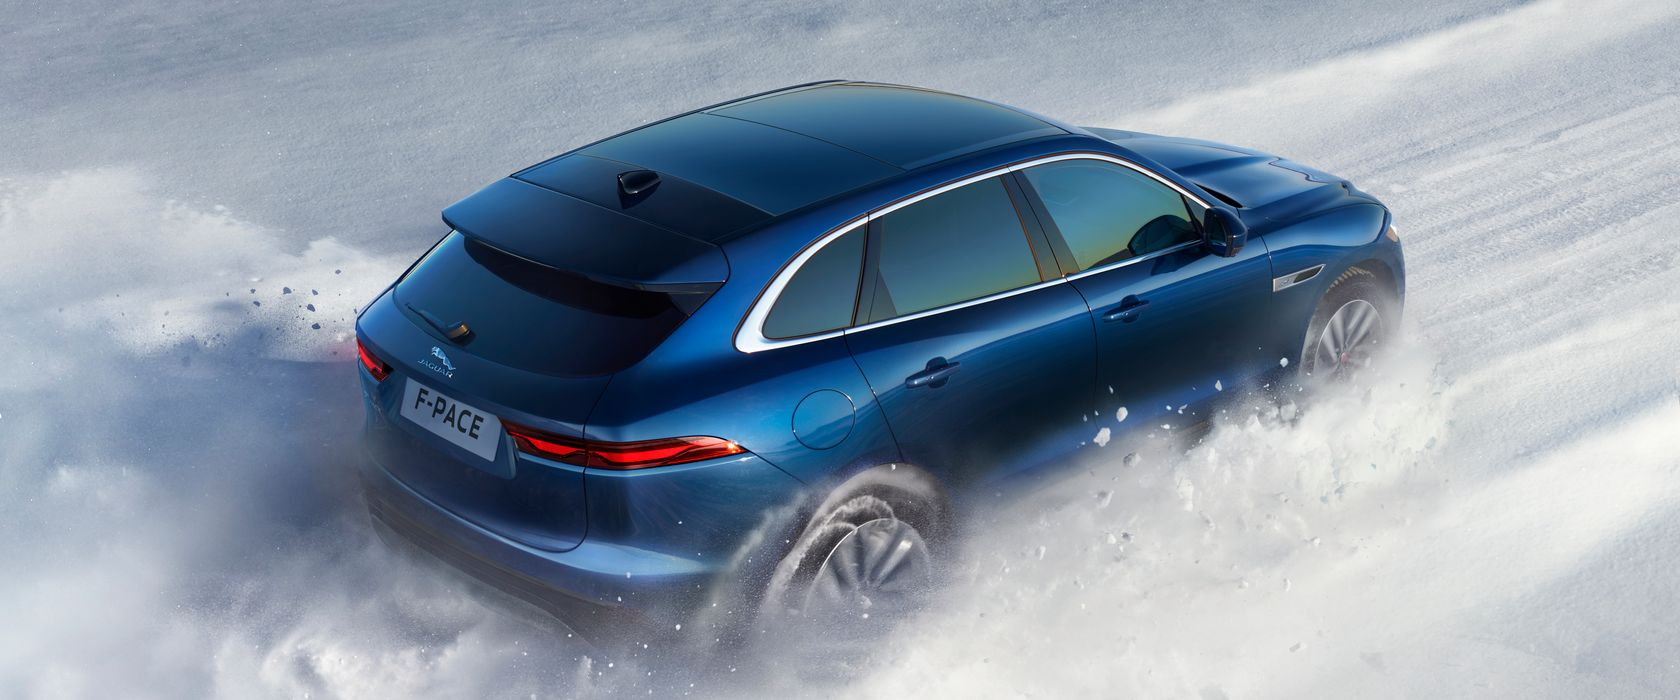 F-PACE med AWD